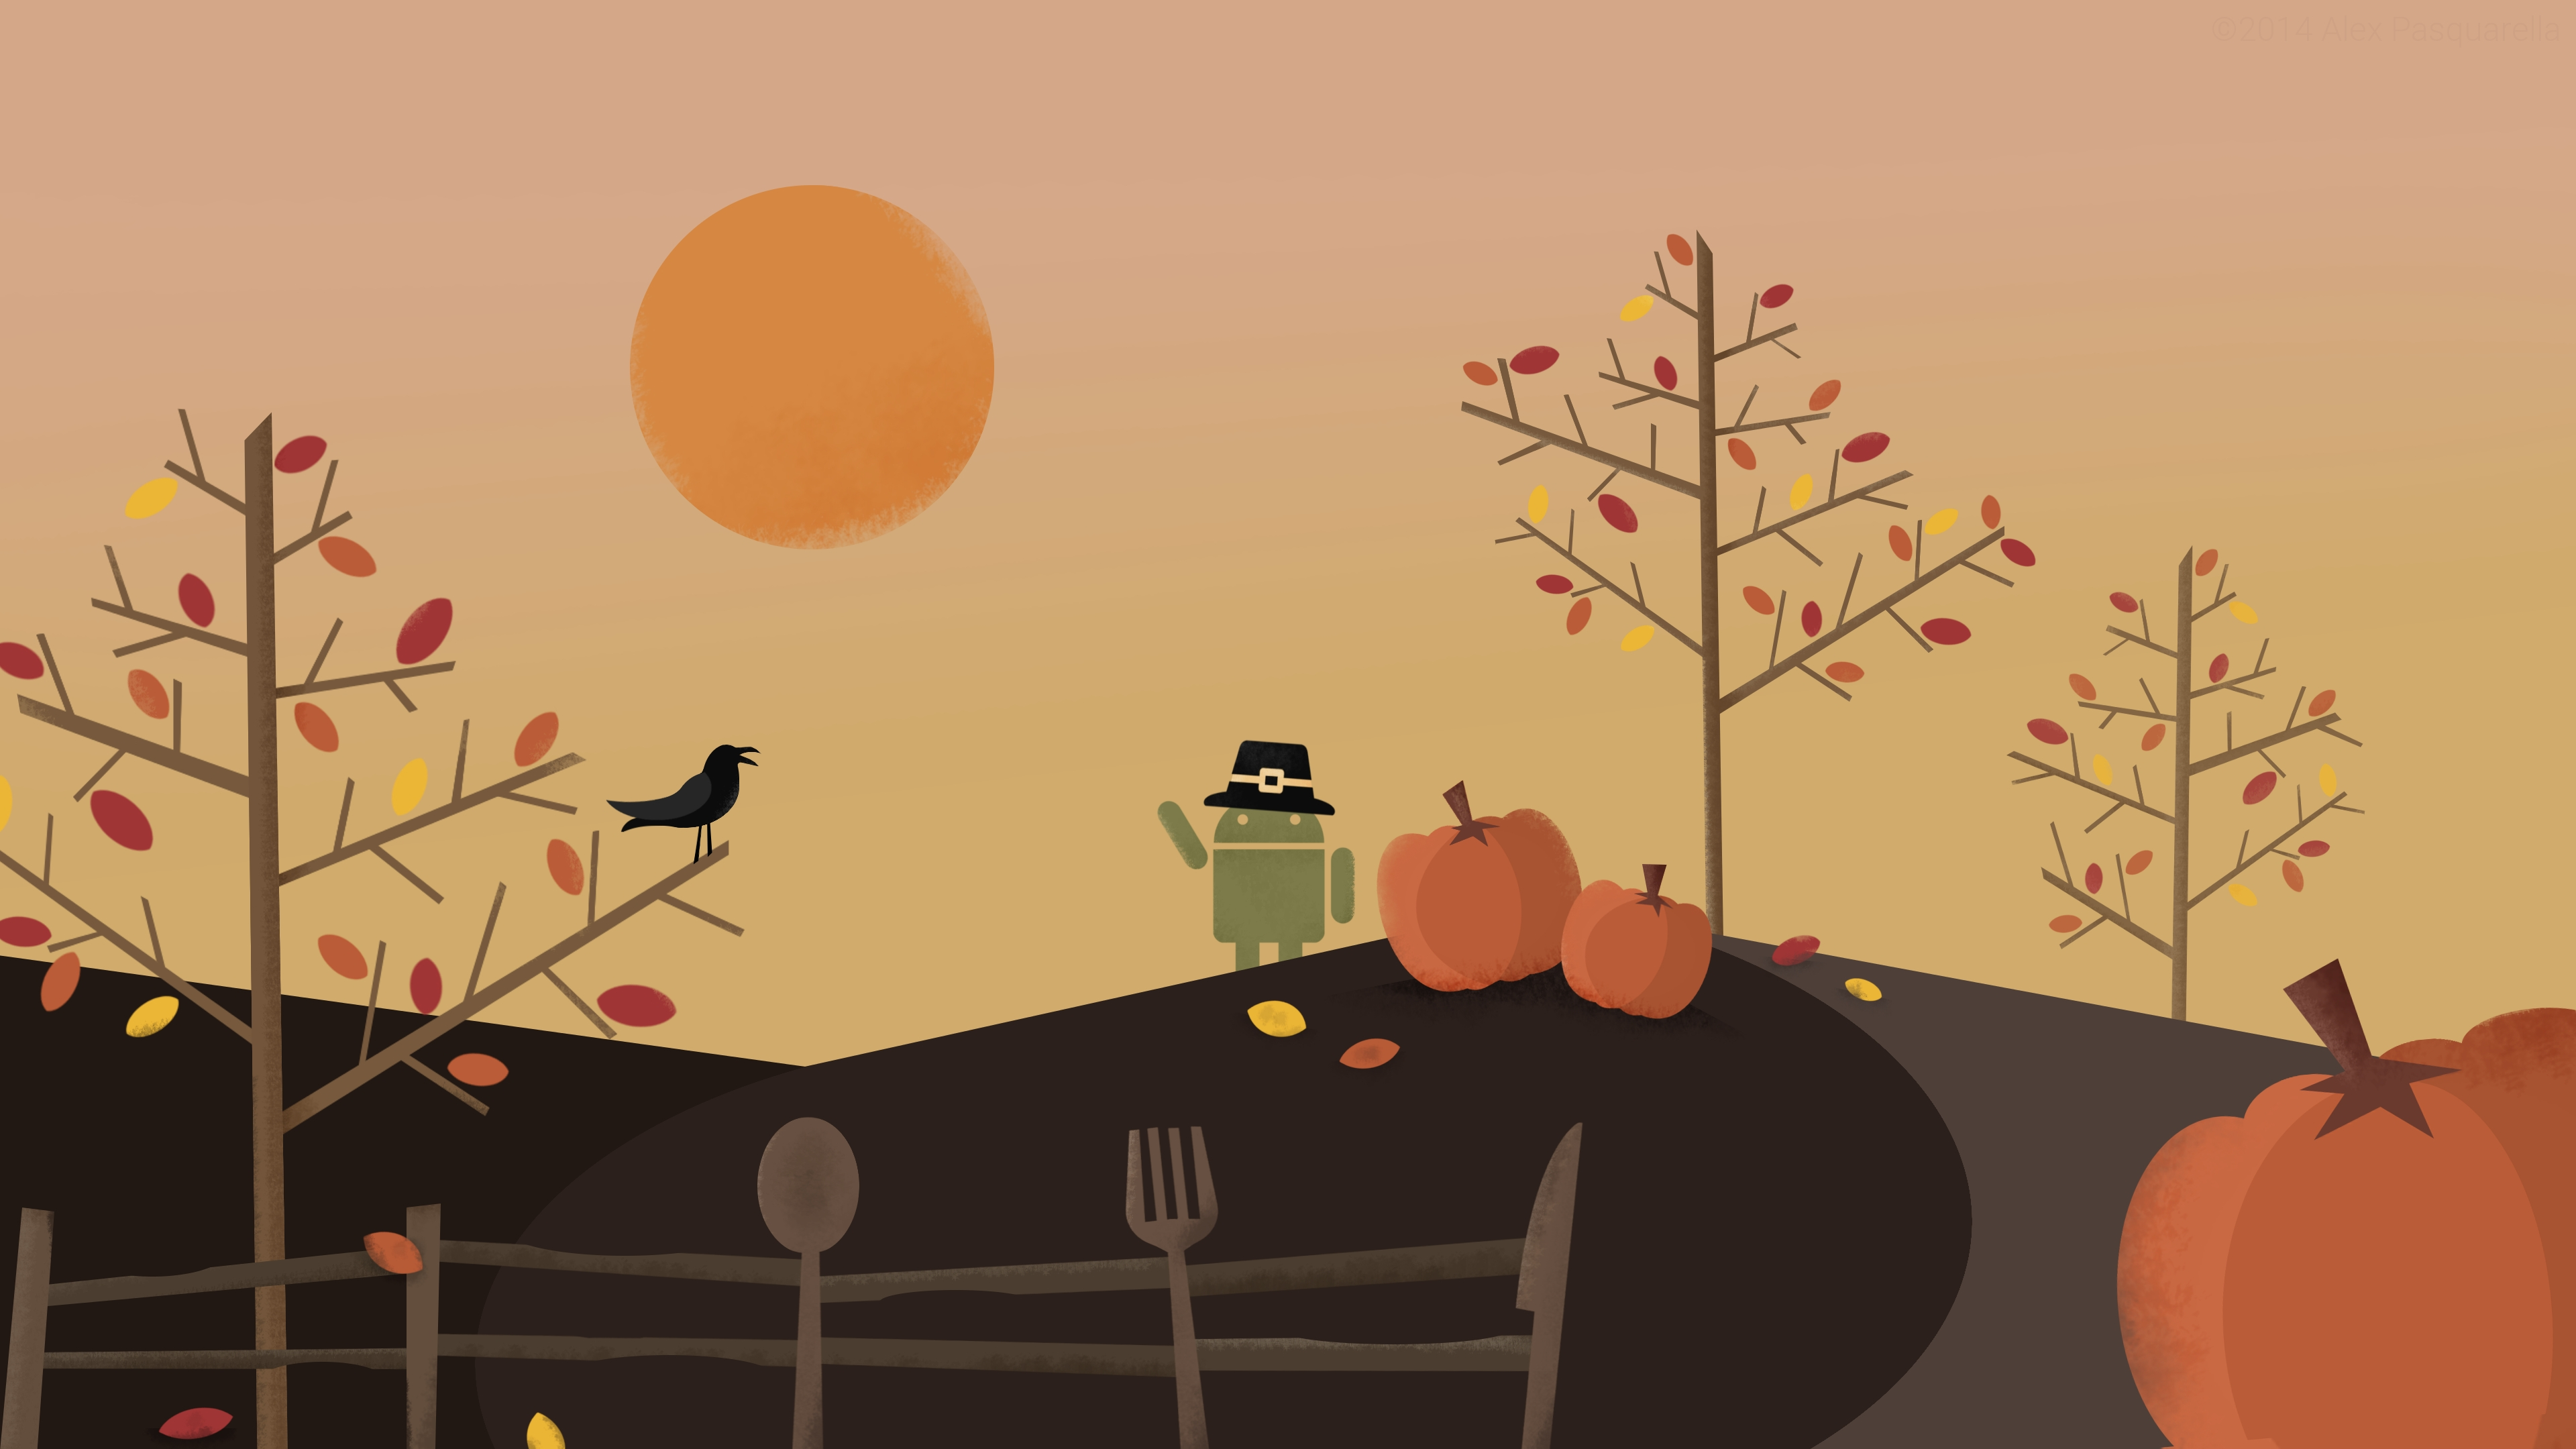 10 Best Thanksgiving Wallpaper For Android FULL HD 1920×1080 For PC Background